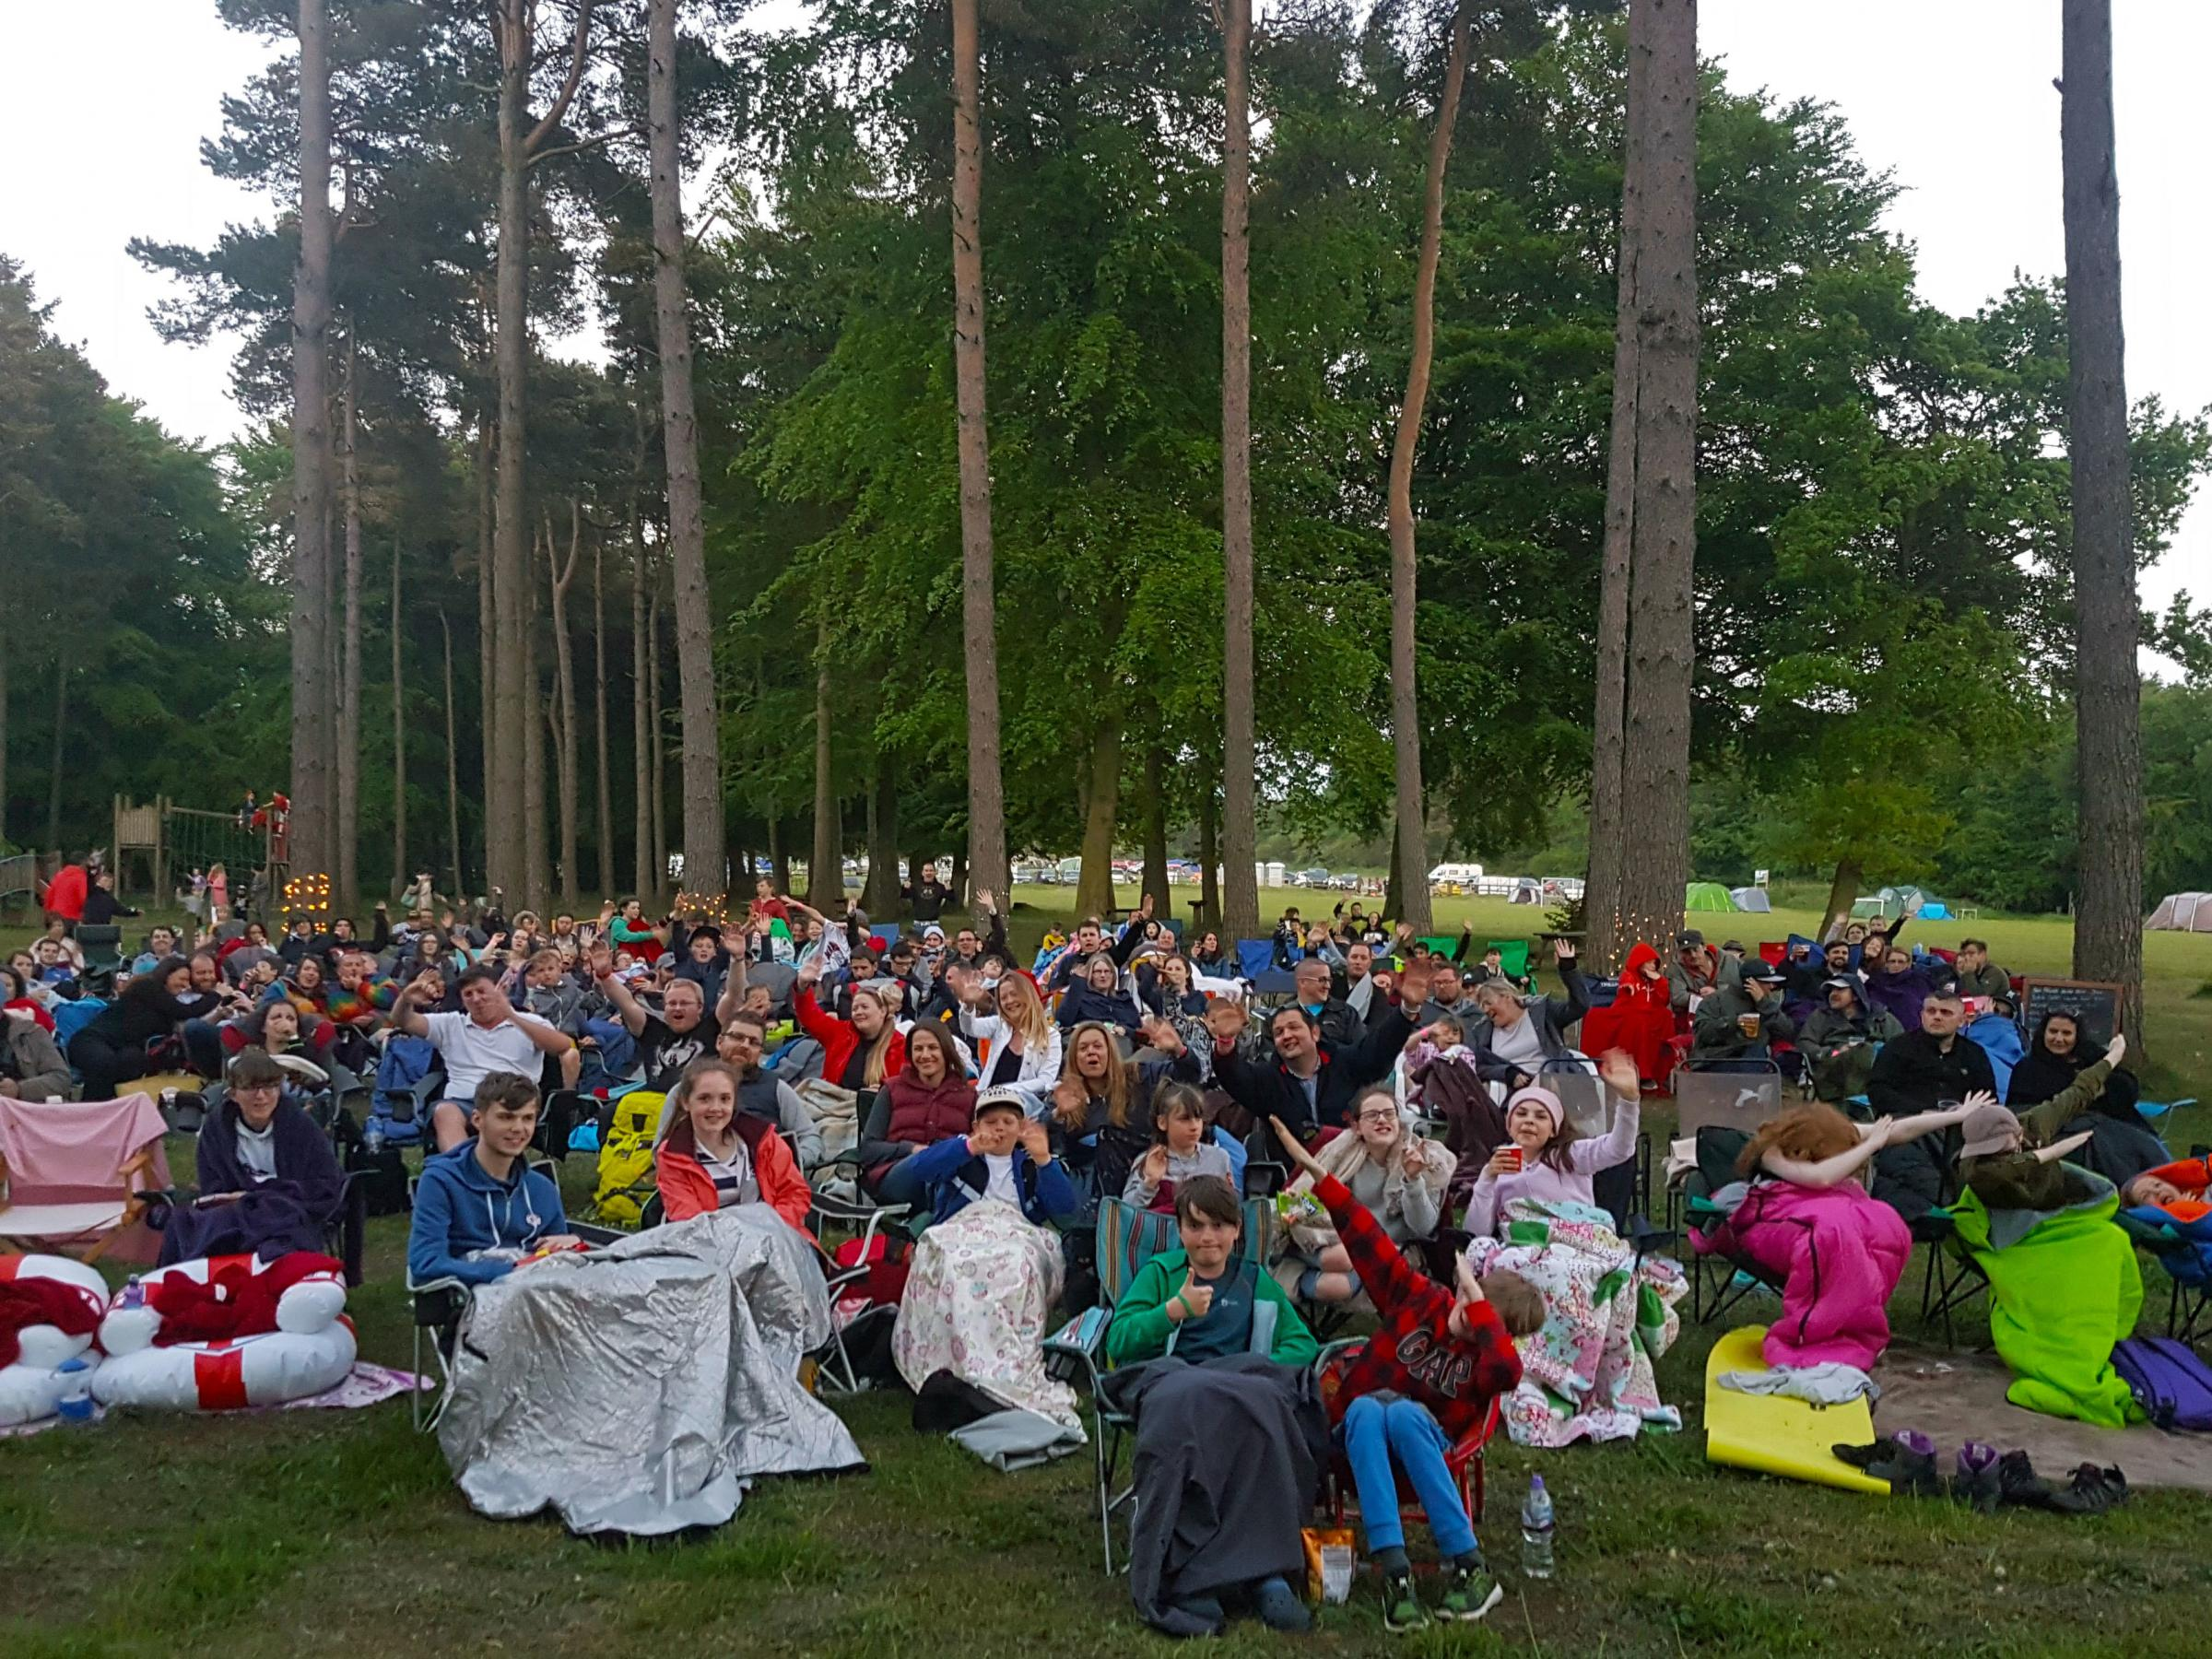 Cinema goers can enjoy some of the latest films and all time classics in Dalby Forest this summer